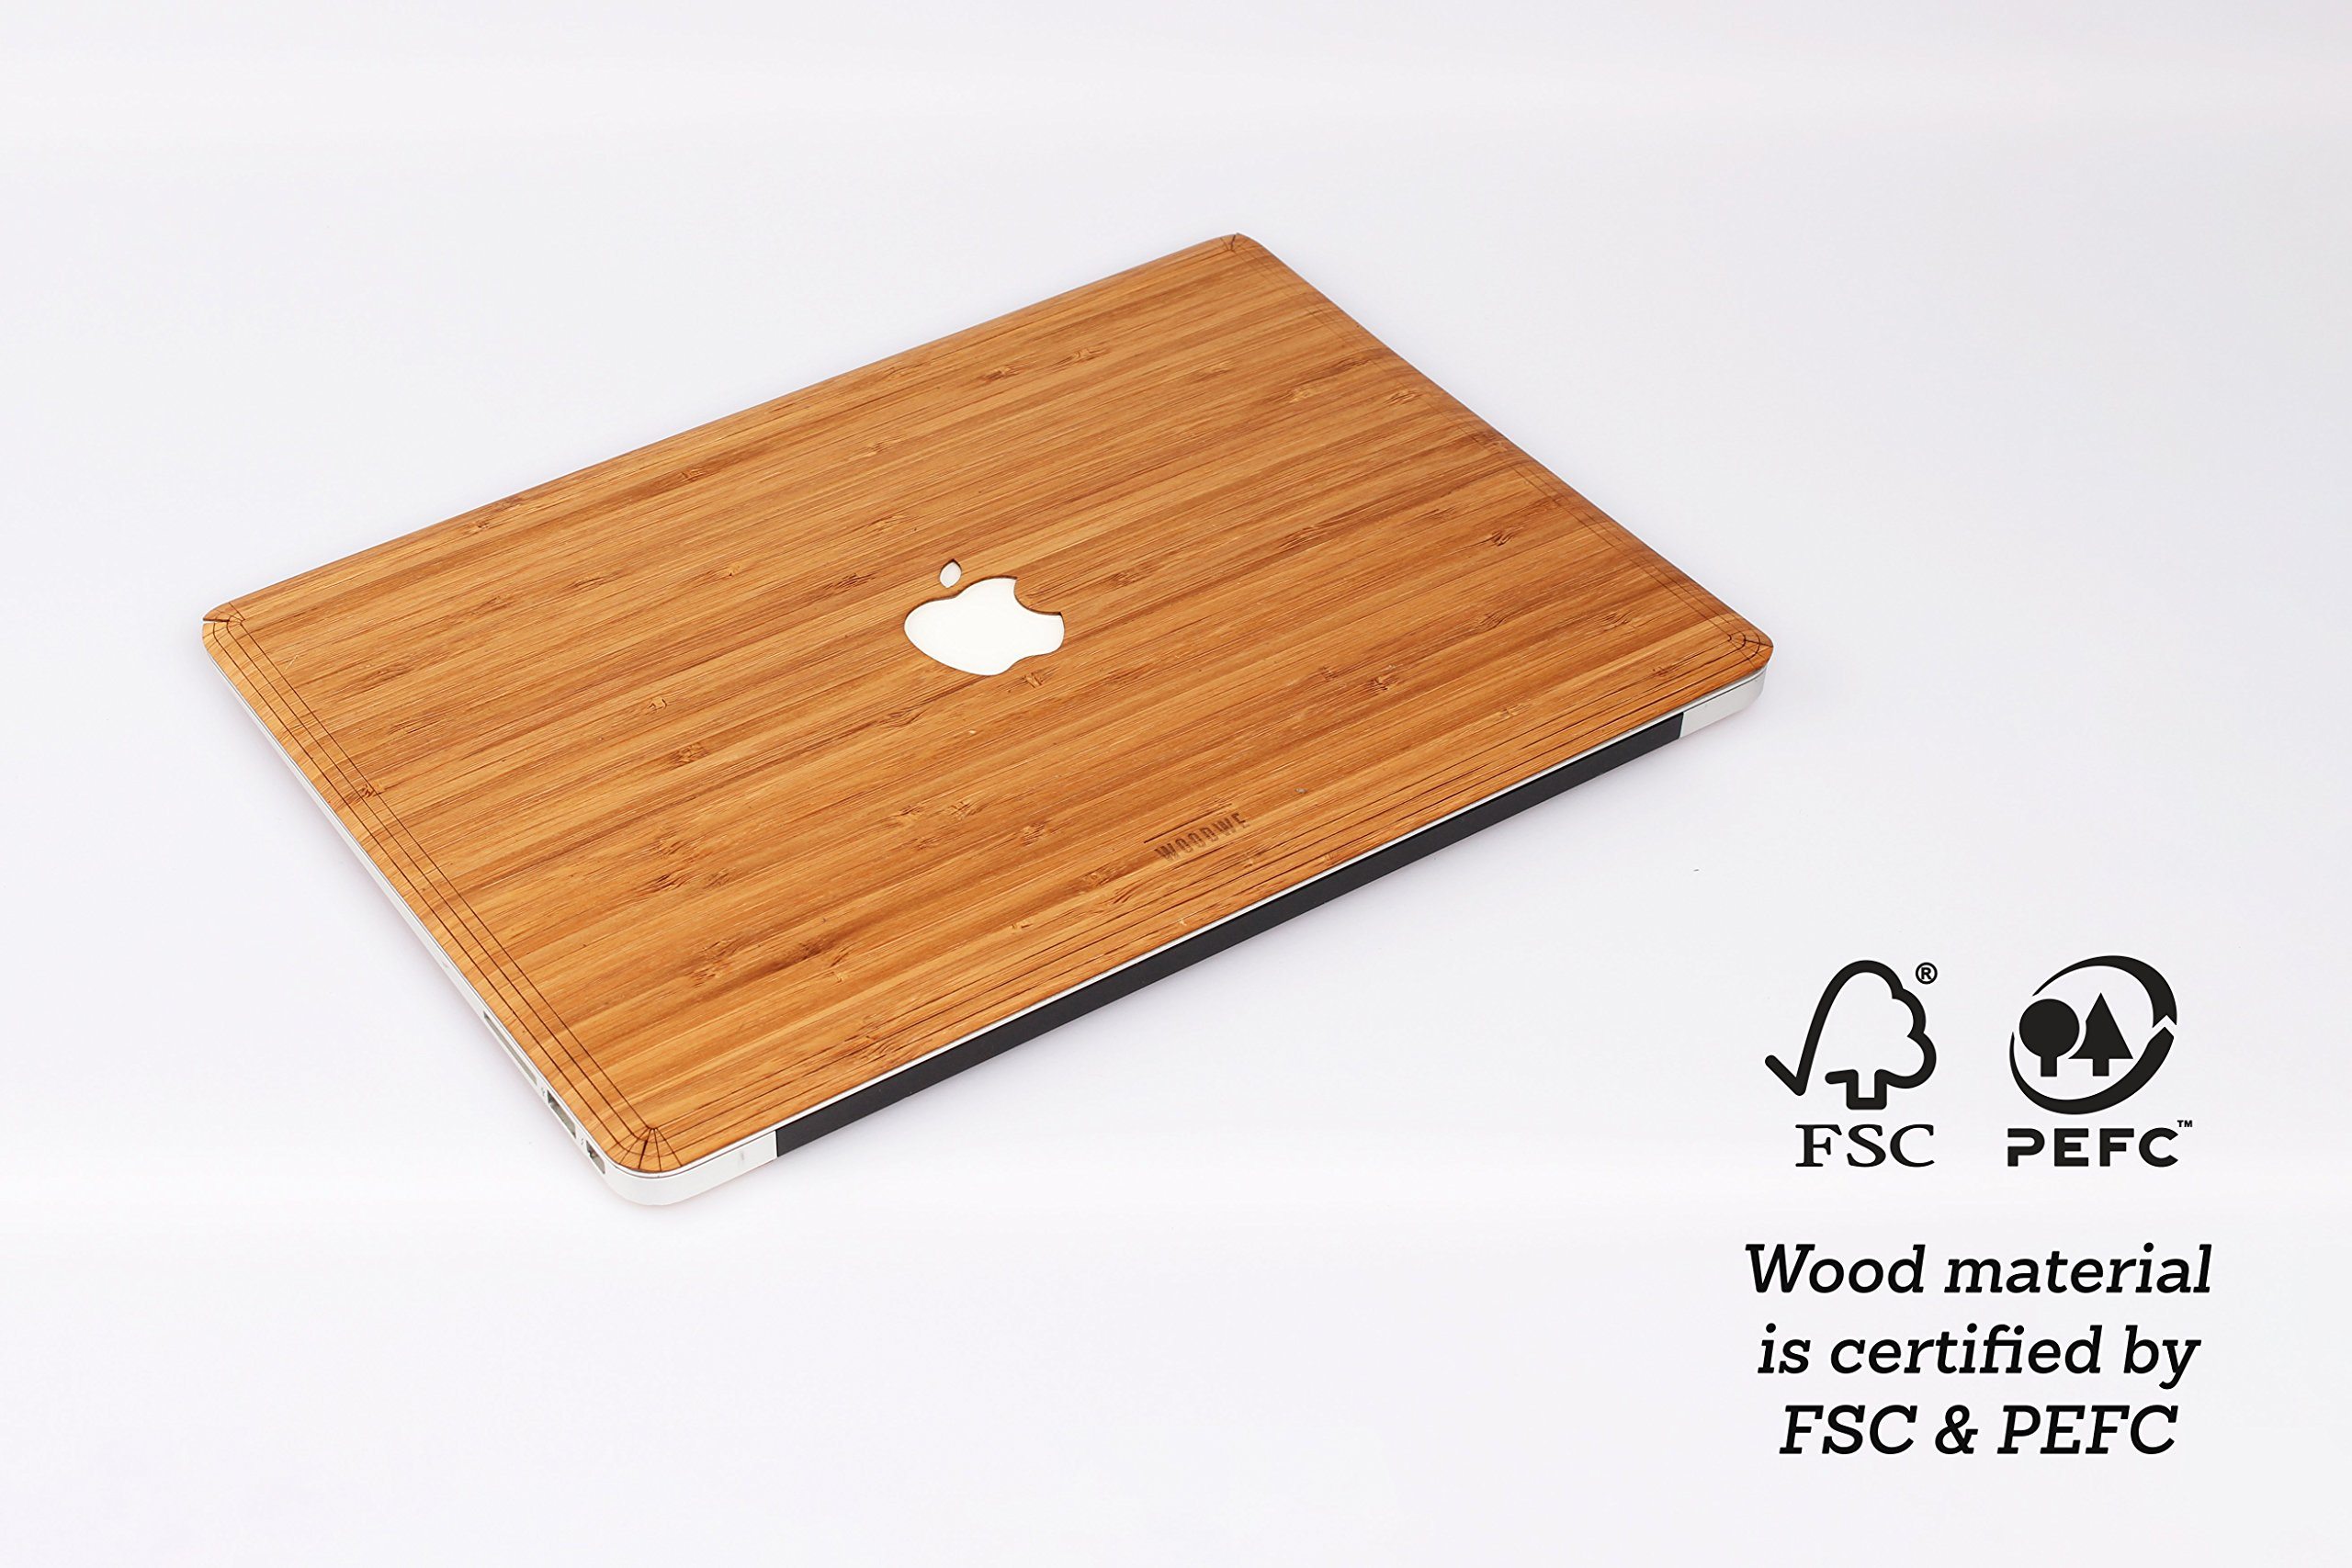 WOODWE Real Wood MacBook Skin for Mac Air 13 inch Non Retina Display   Model: A1237/A1304/A1369/A1466; Early 2008 - Mid 2017   Natural Bamboo   TOP ONLY by WOODWE (Image #2)